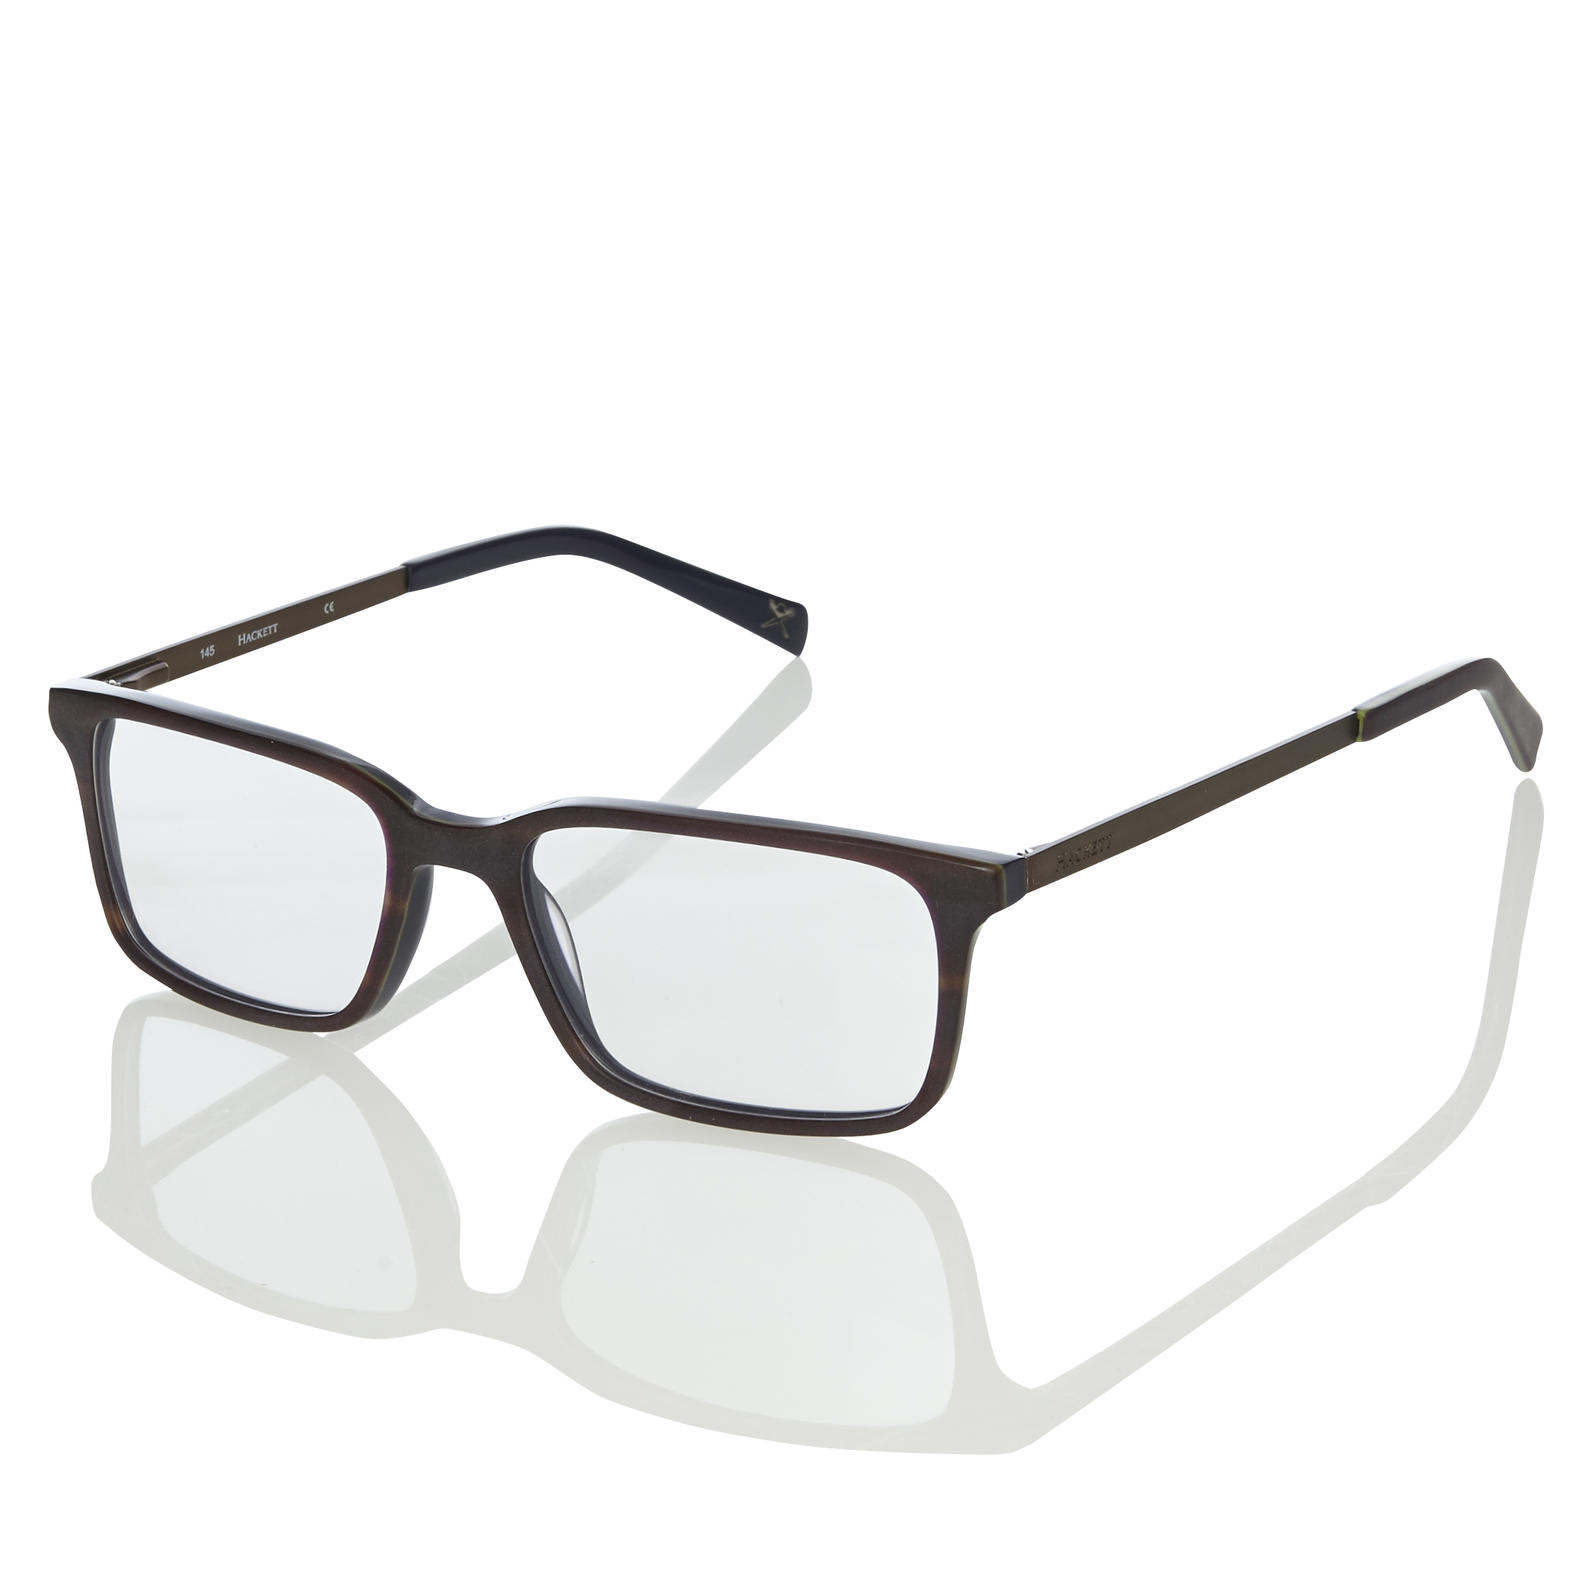 Hackett London glasses Authorised Stockist HEK 1127 ...